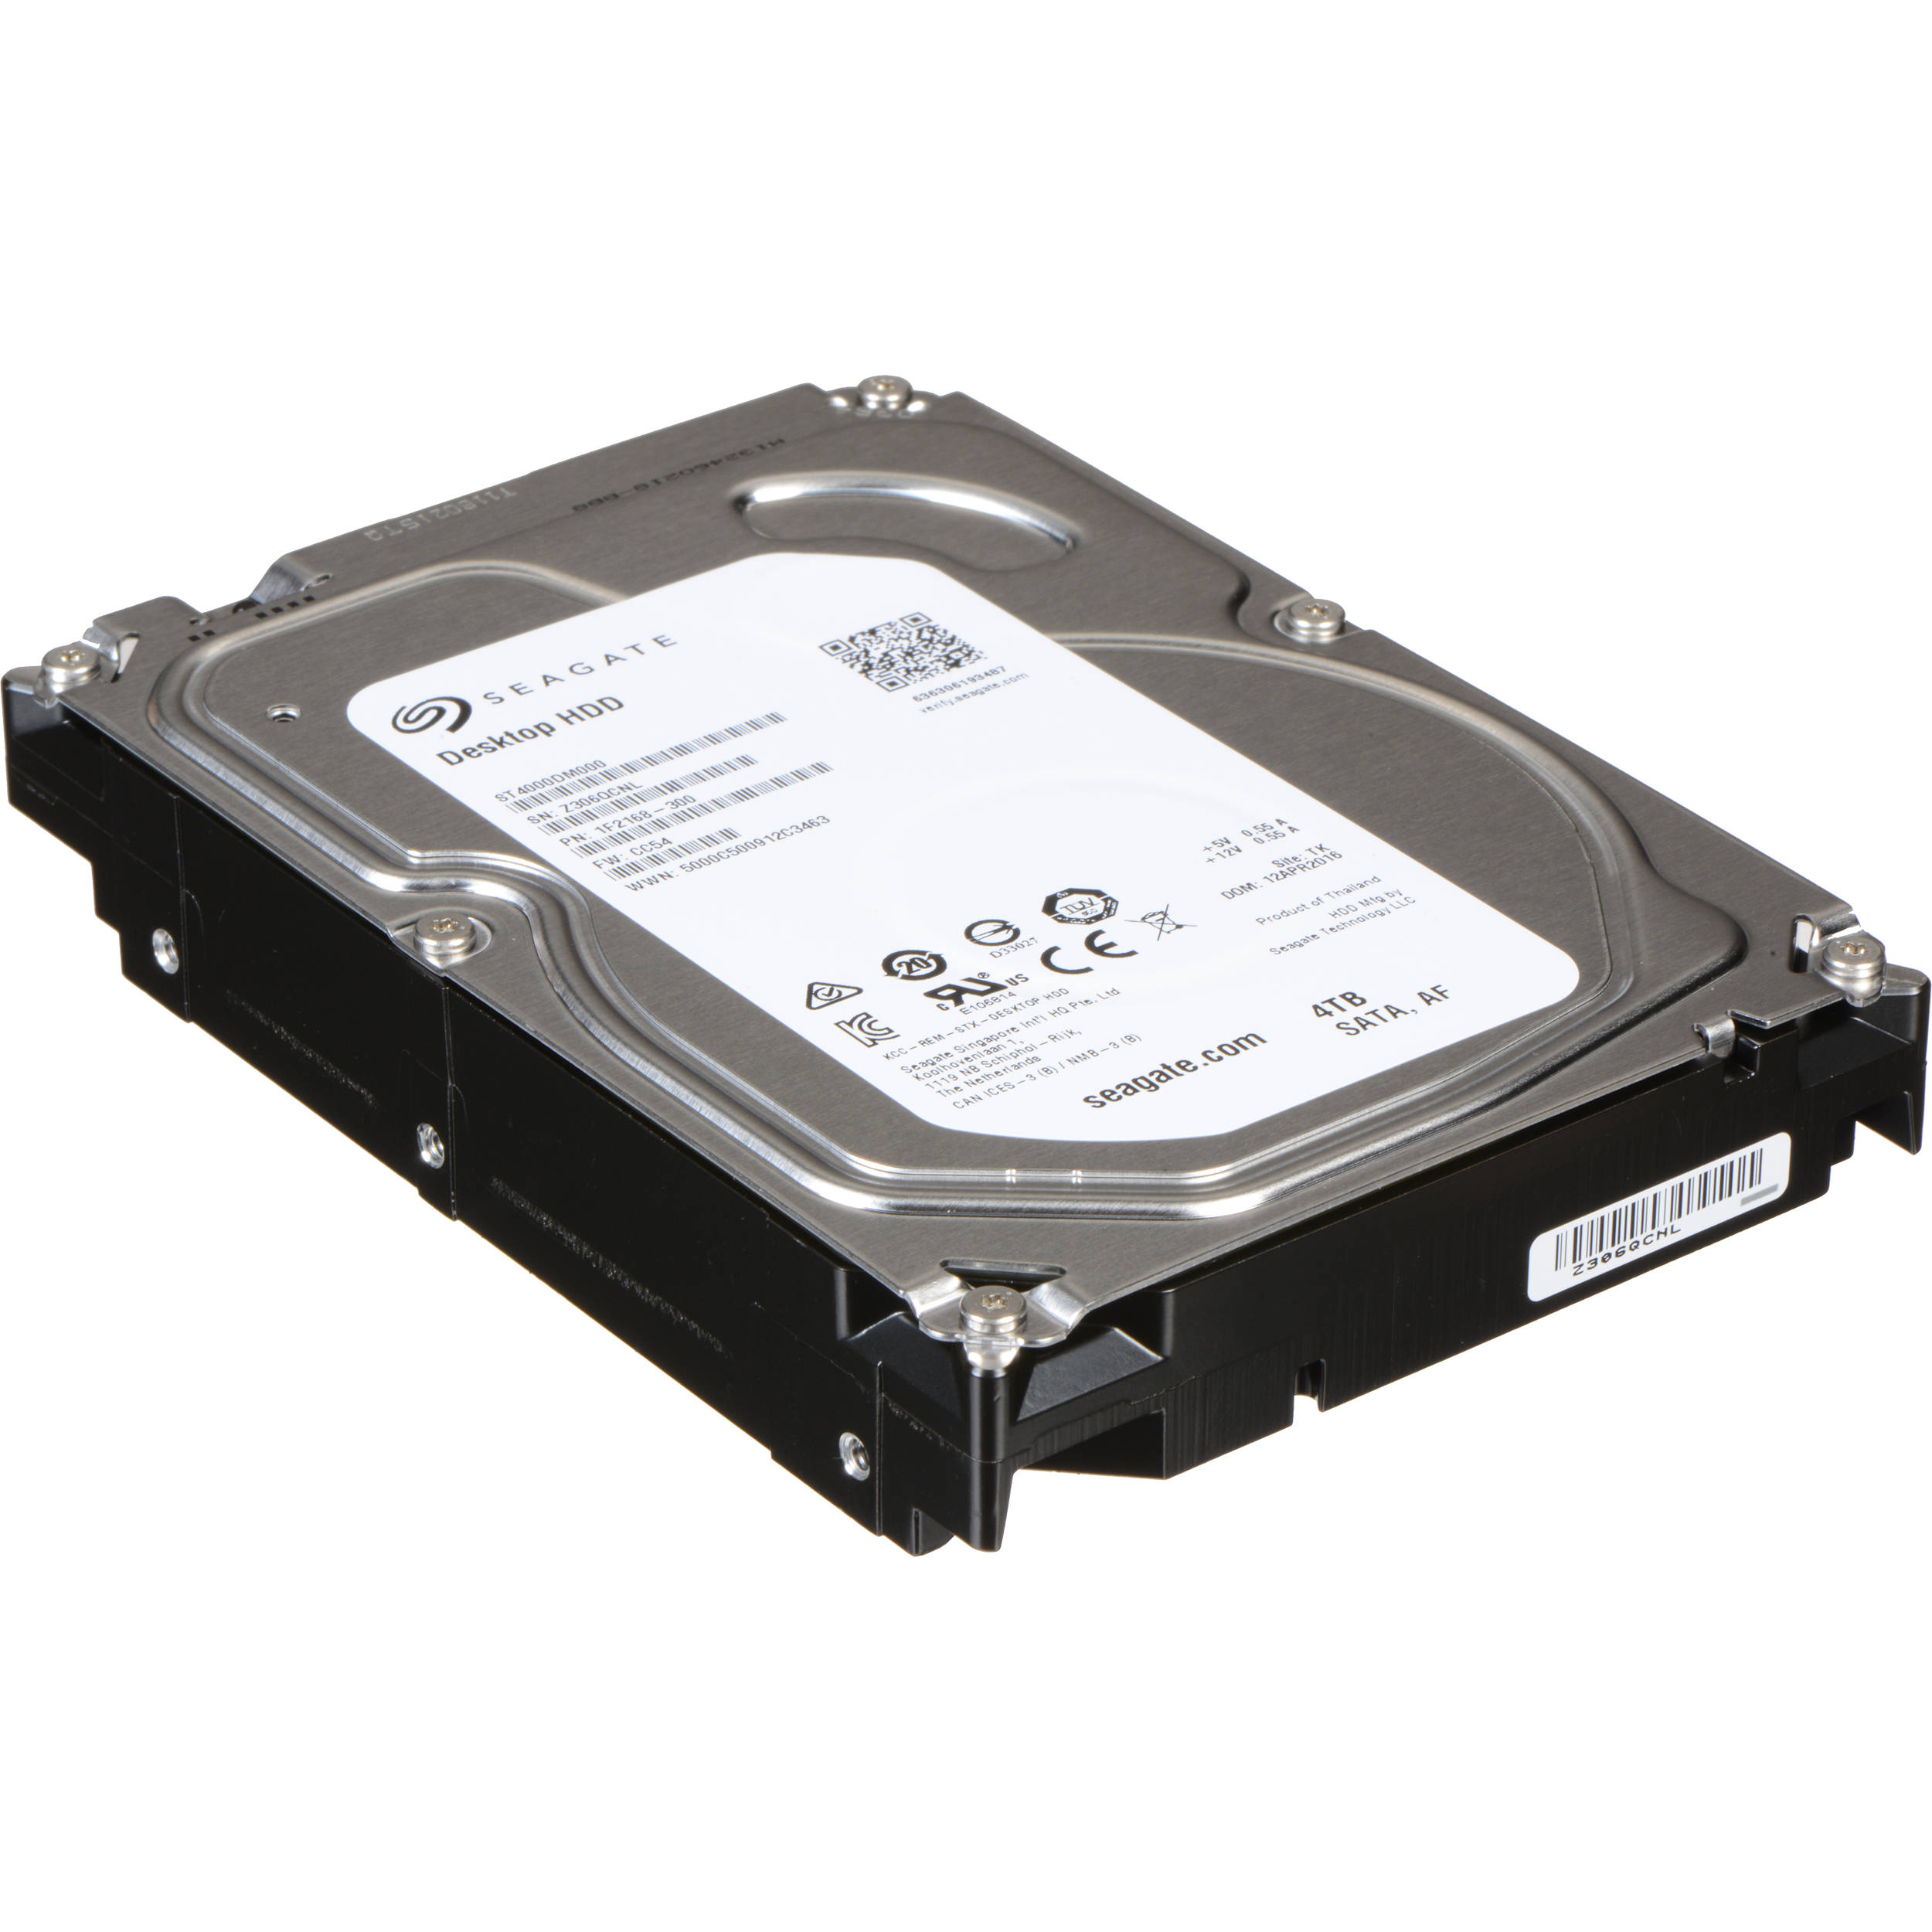 SEAGATE SATA HDD DRIVERS FOR WINDOWS 7